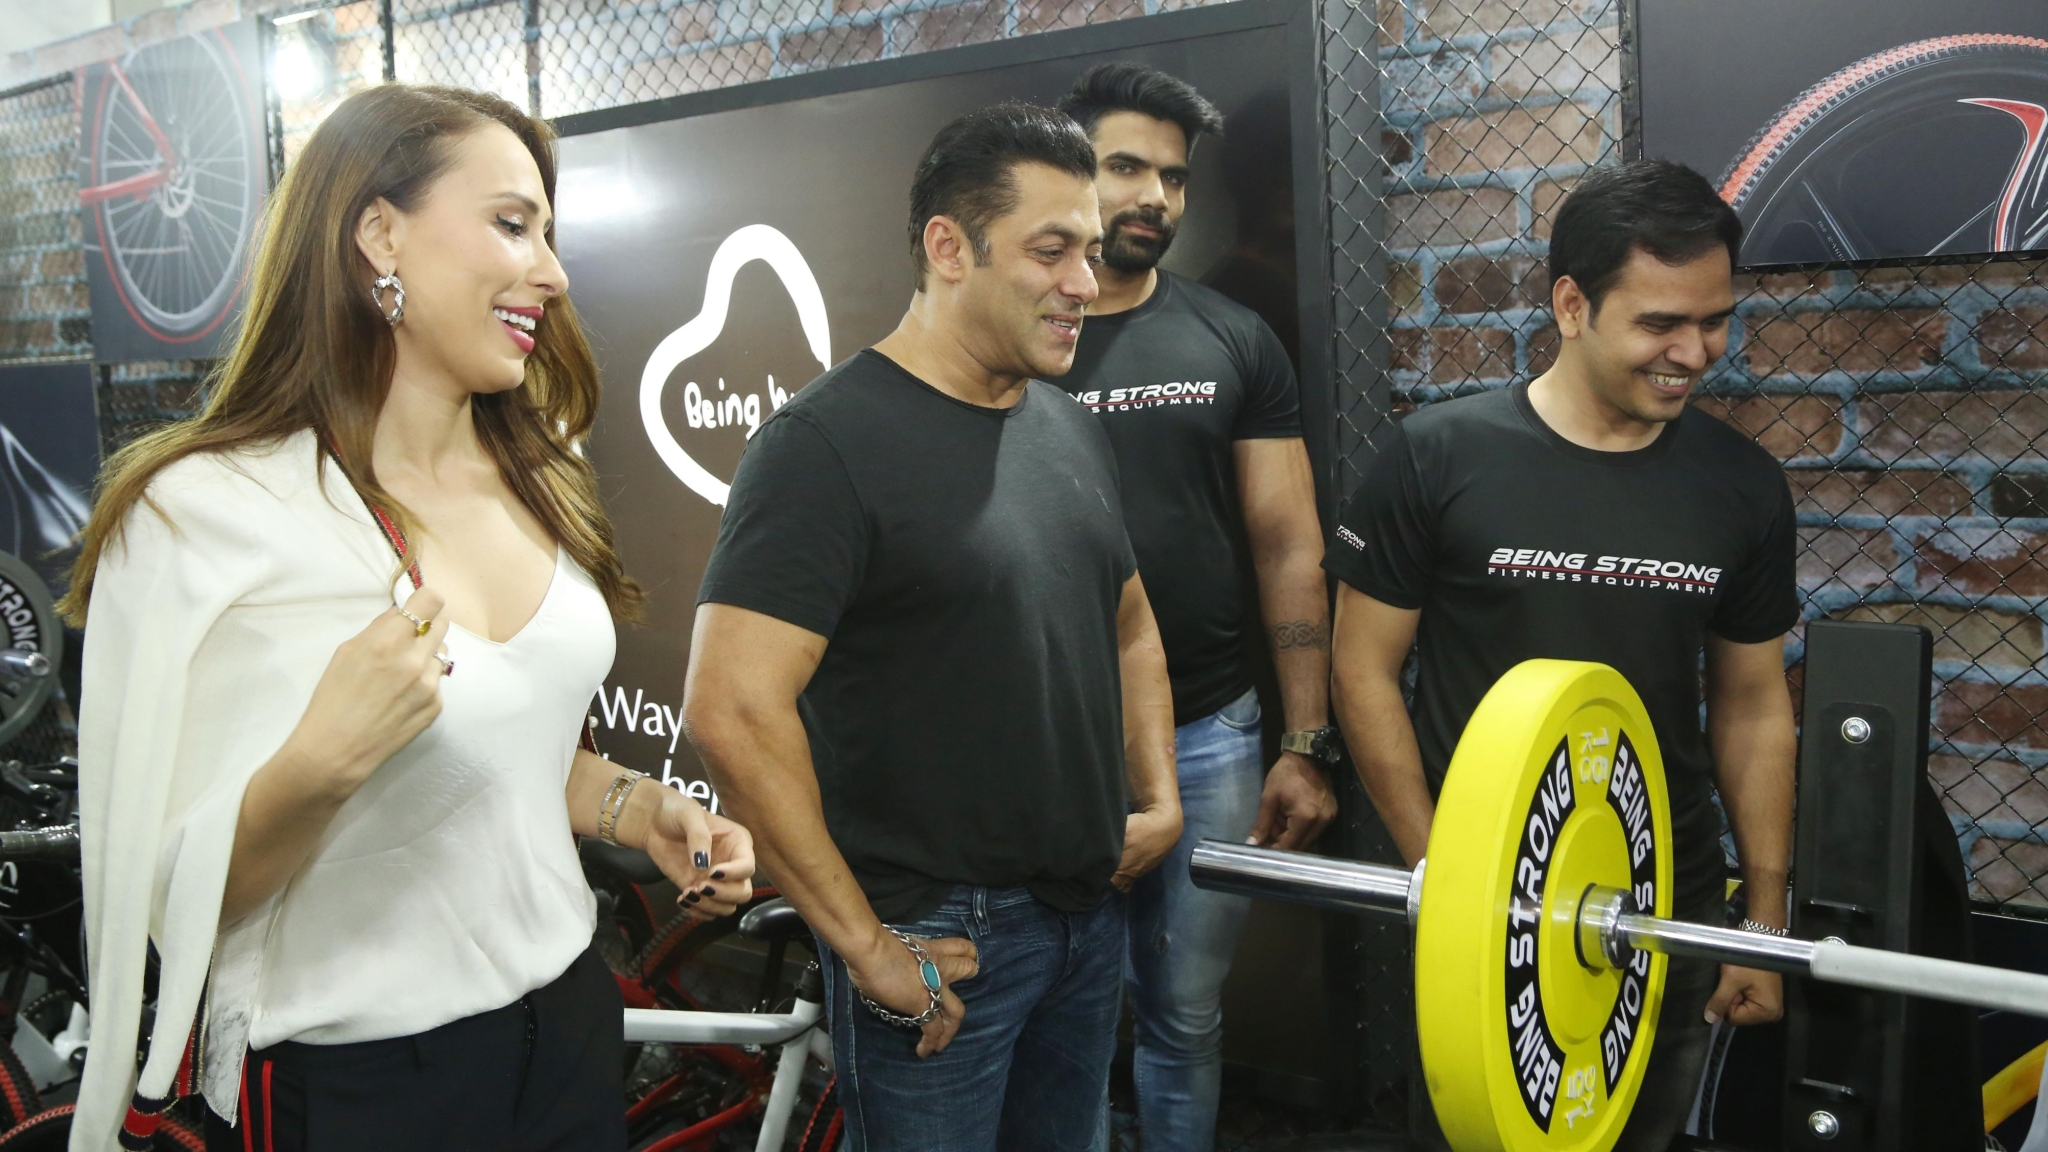 Salman Khan, Iulia Vantur Flex Their Muscles at the Gym In Mumbai